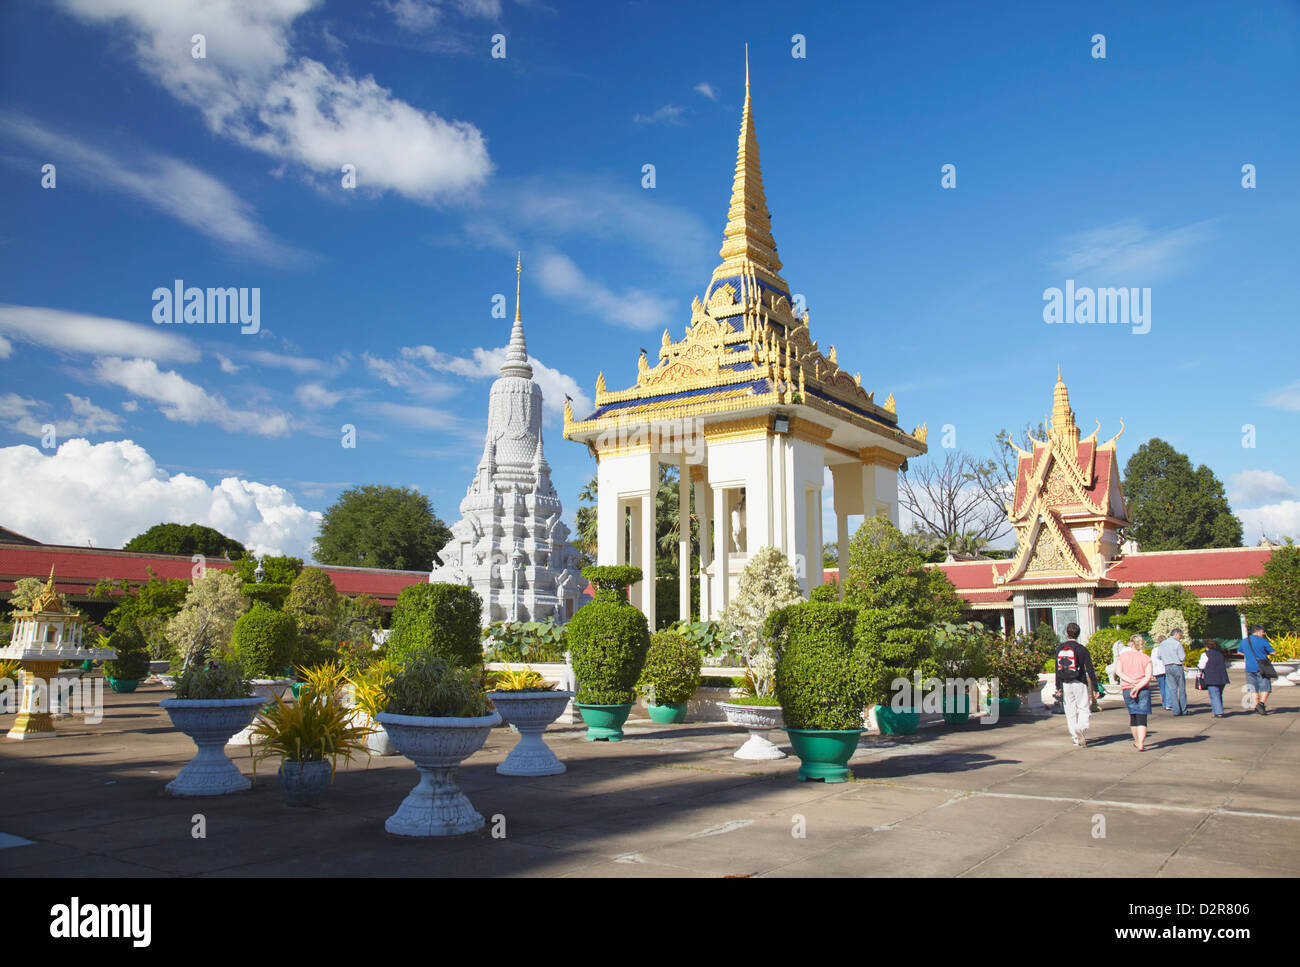 Tourists in grounds of Silver Pagoda in Royal Palace, Phnom Penh, Cambodia, Indochina, Southeast Asia, Asia - Stock Image